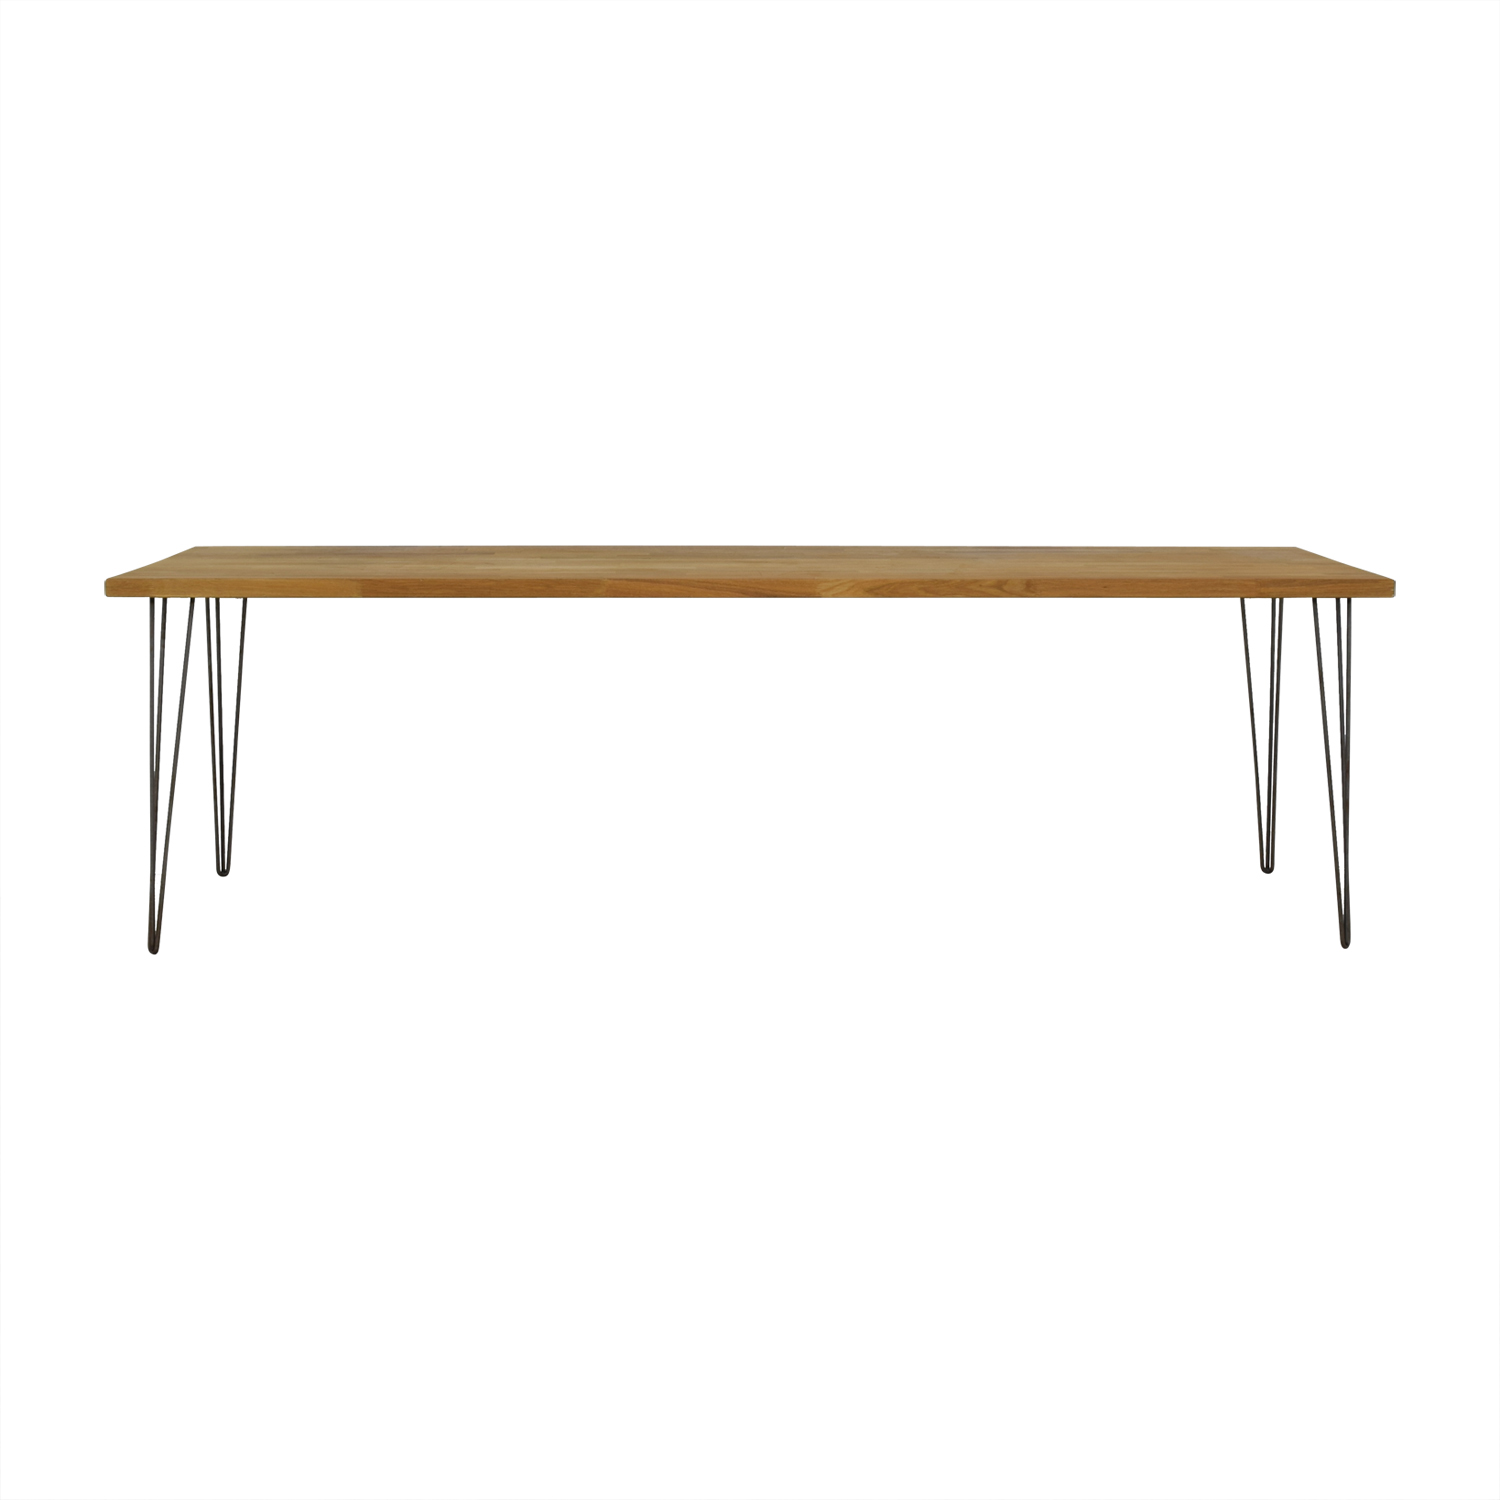 Custom Hazelnut Wood Table with Triangular Steel Legs price